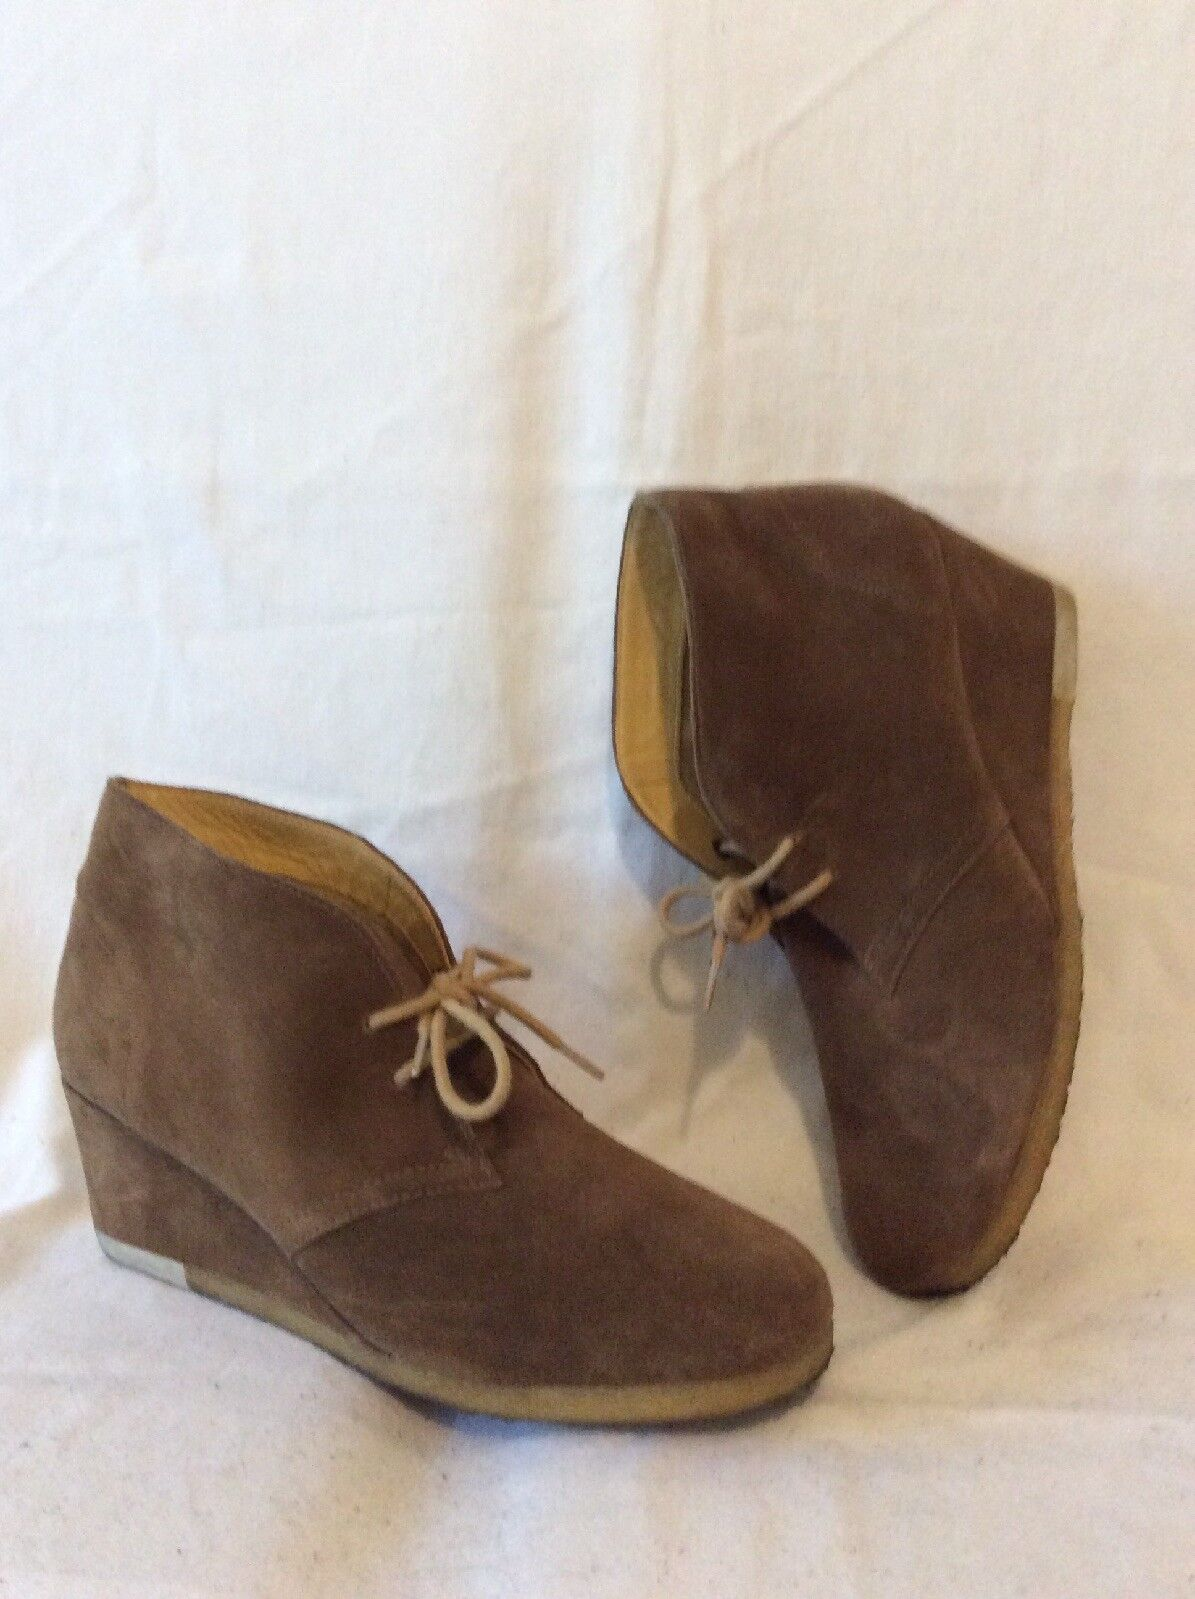 7f49e200868 Clarks Brown Ankle Suede Boots Size 7 nogktp3062-Women's Boots ...